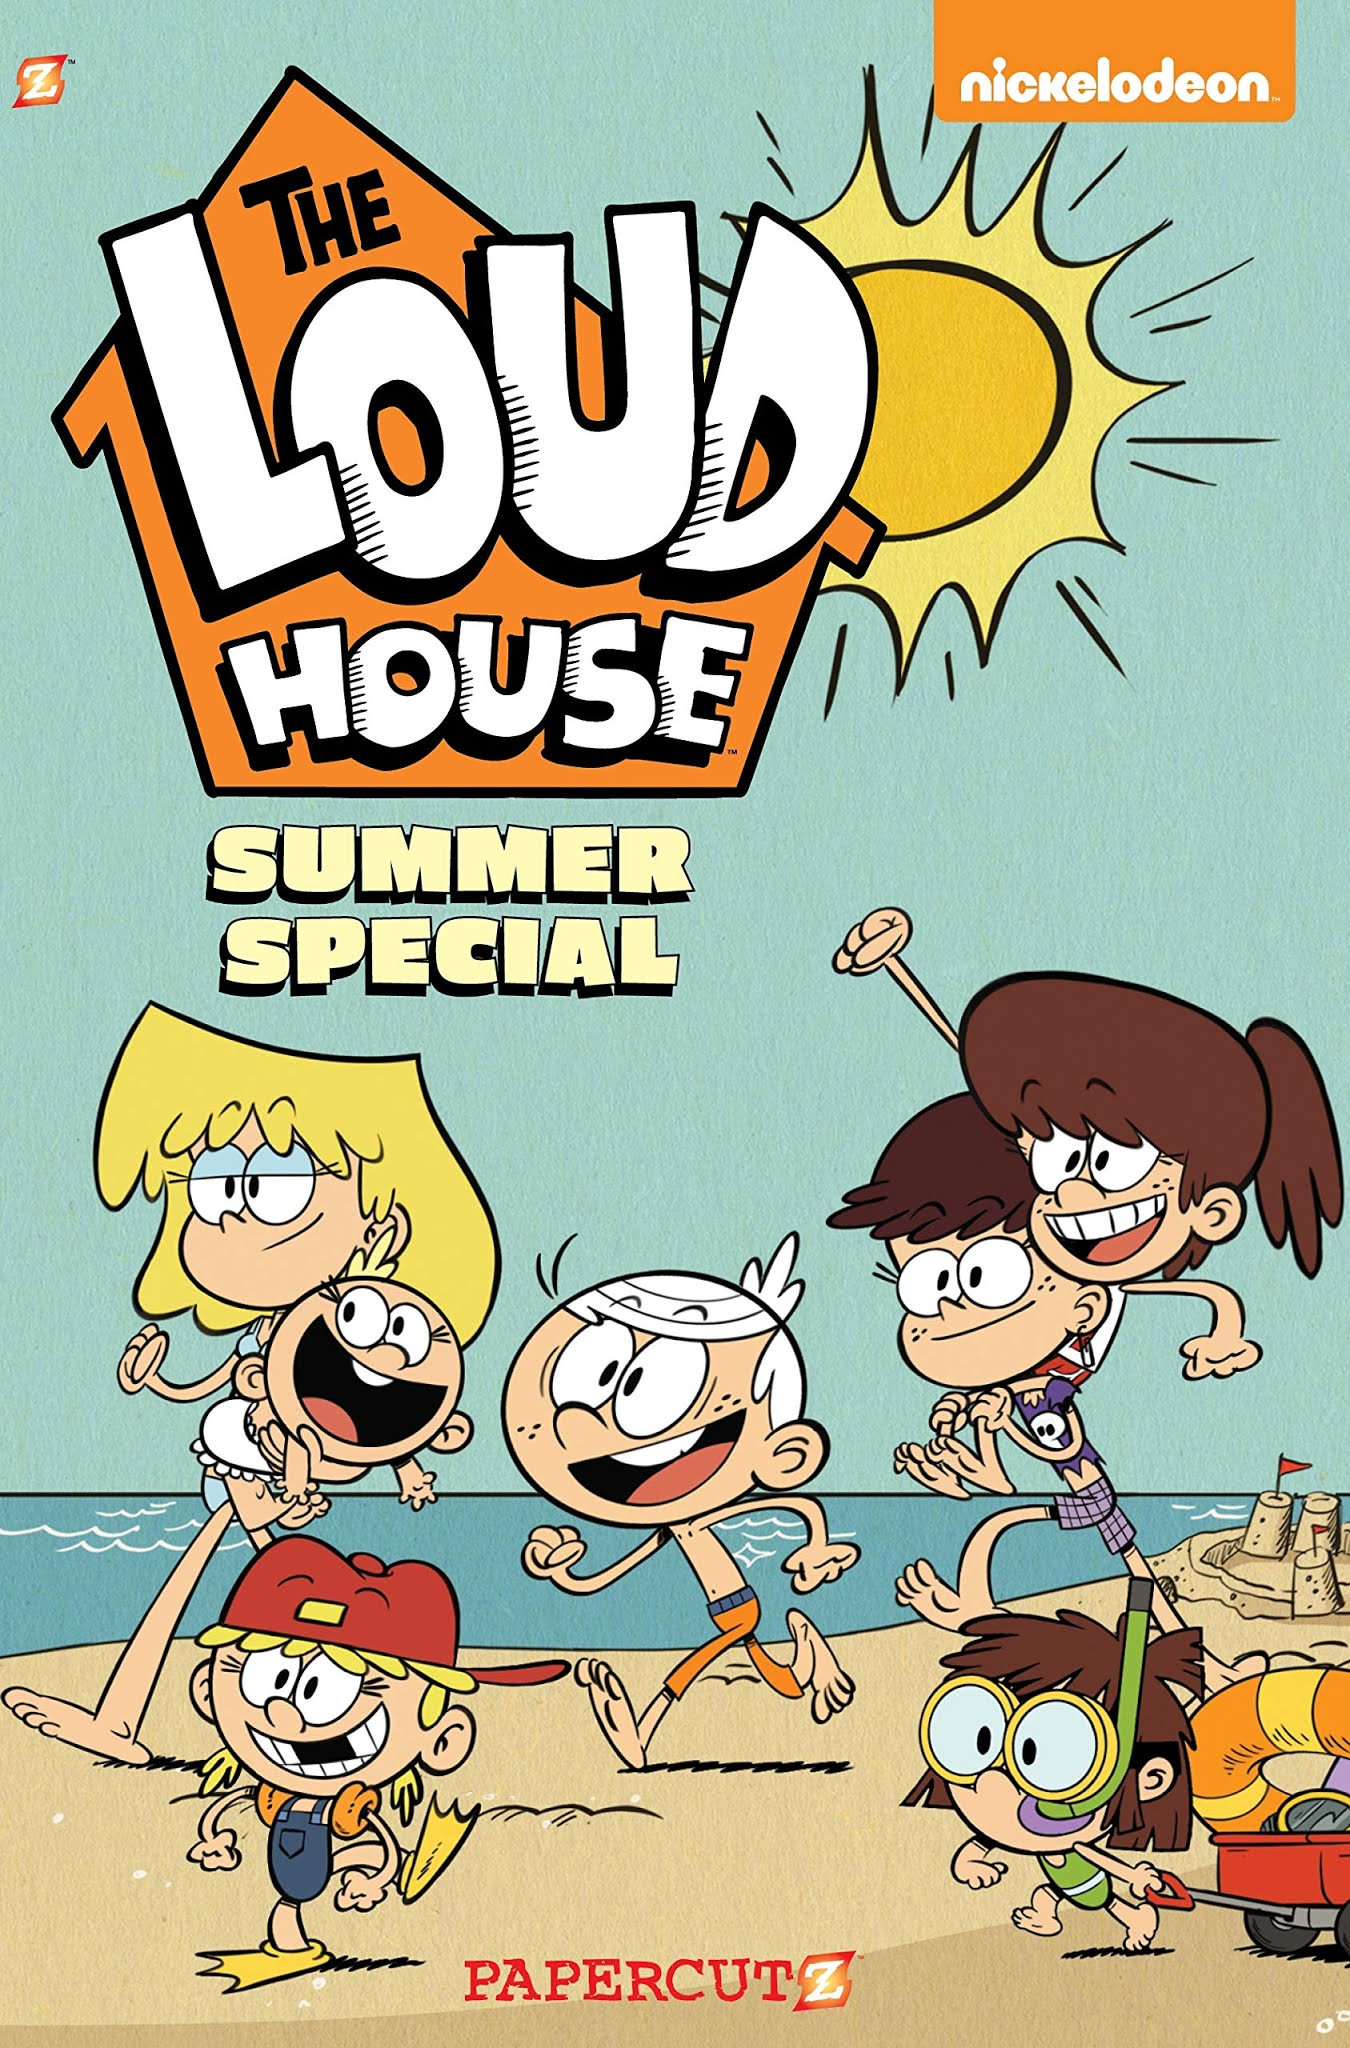 Nickalive Papercutz To Release The Loud House Summer Special Graphic Novel During On Tuesday June 1 2021